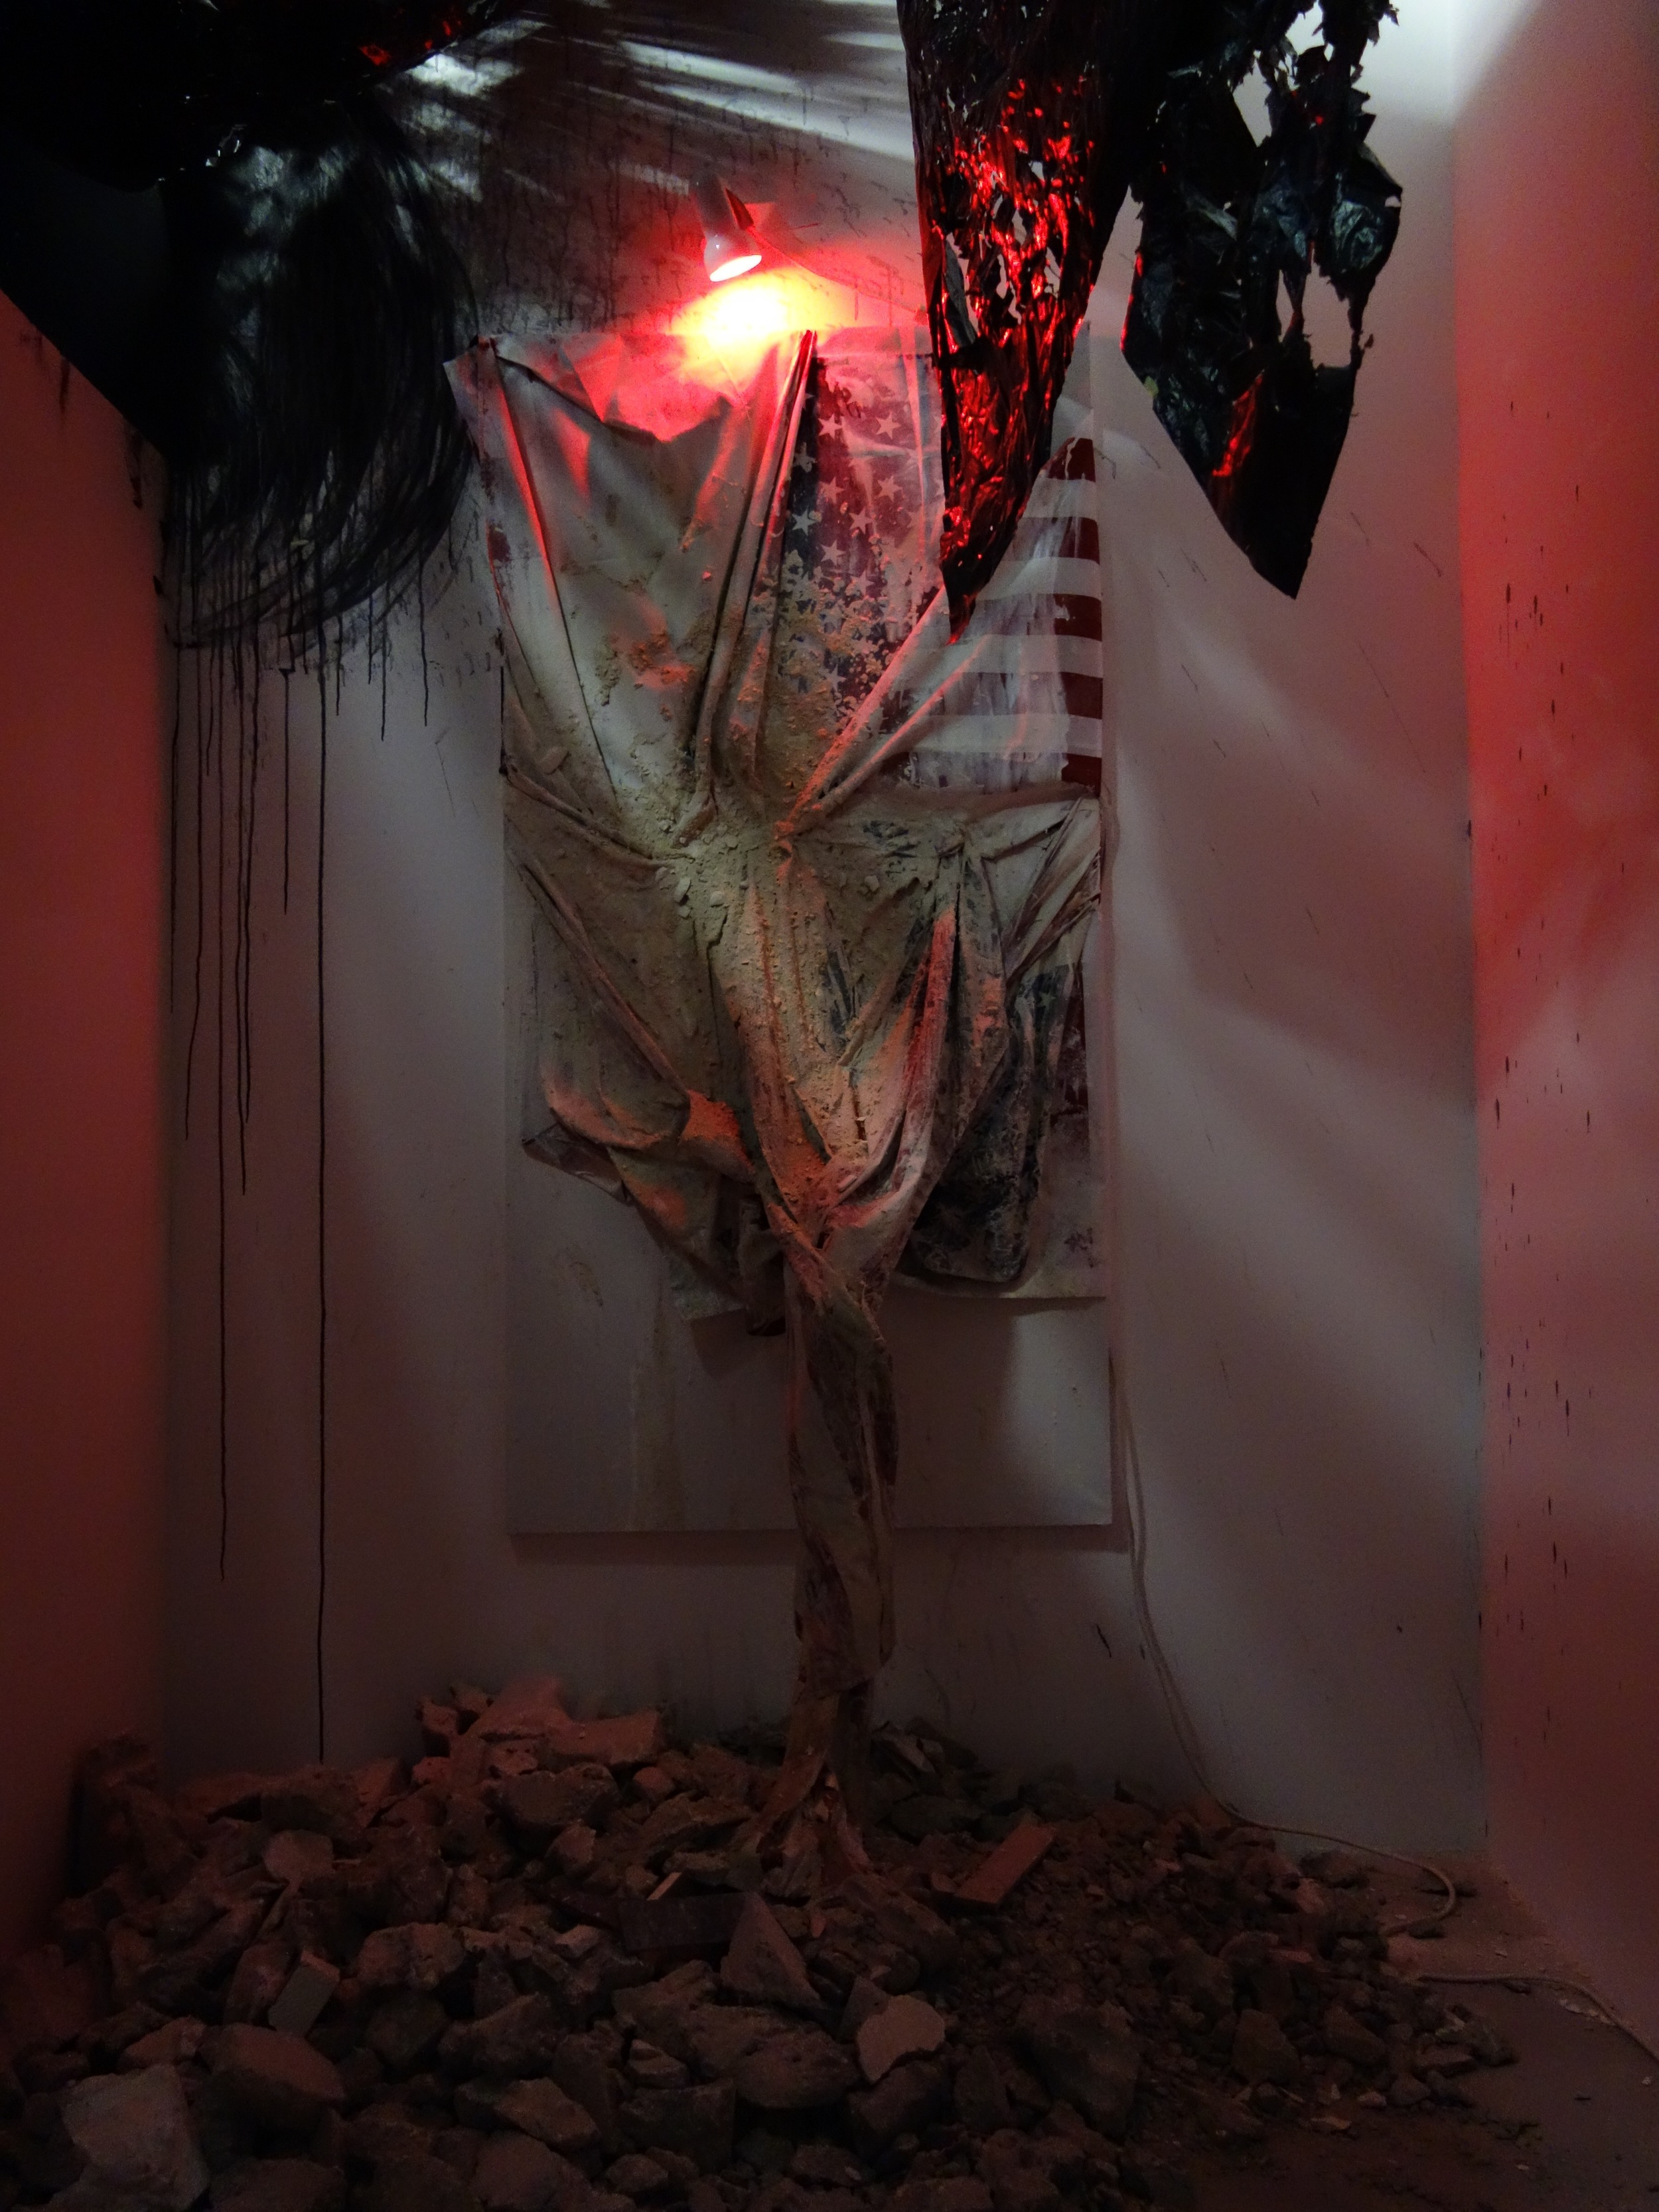 Abigail DeVille, Negation: Dusk to Dust, 2013